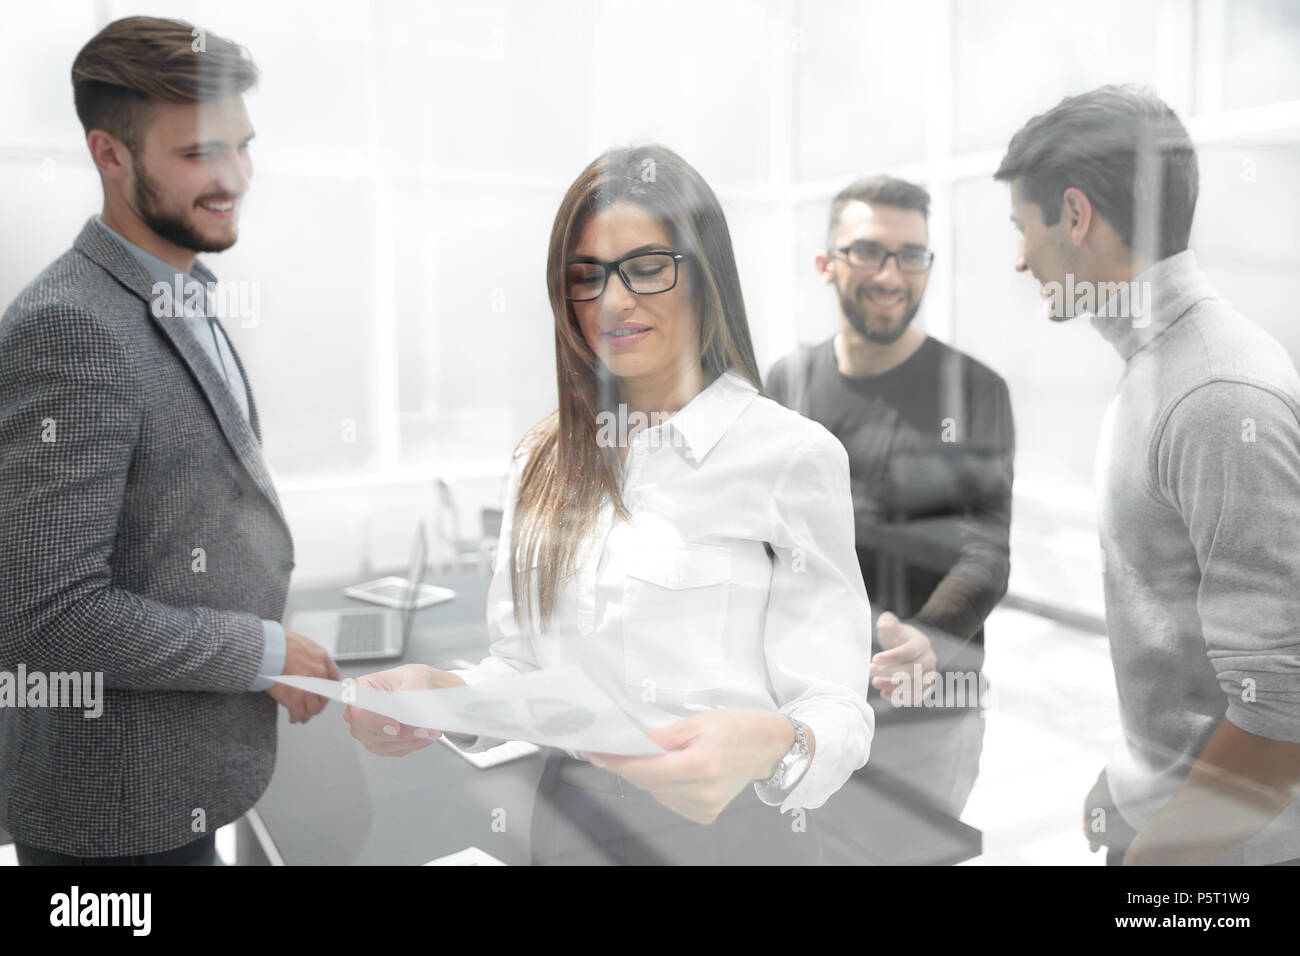 behind the glass.business team discusses working documents - Stock Image